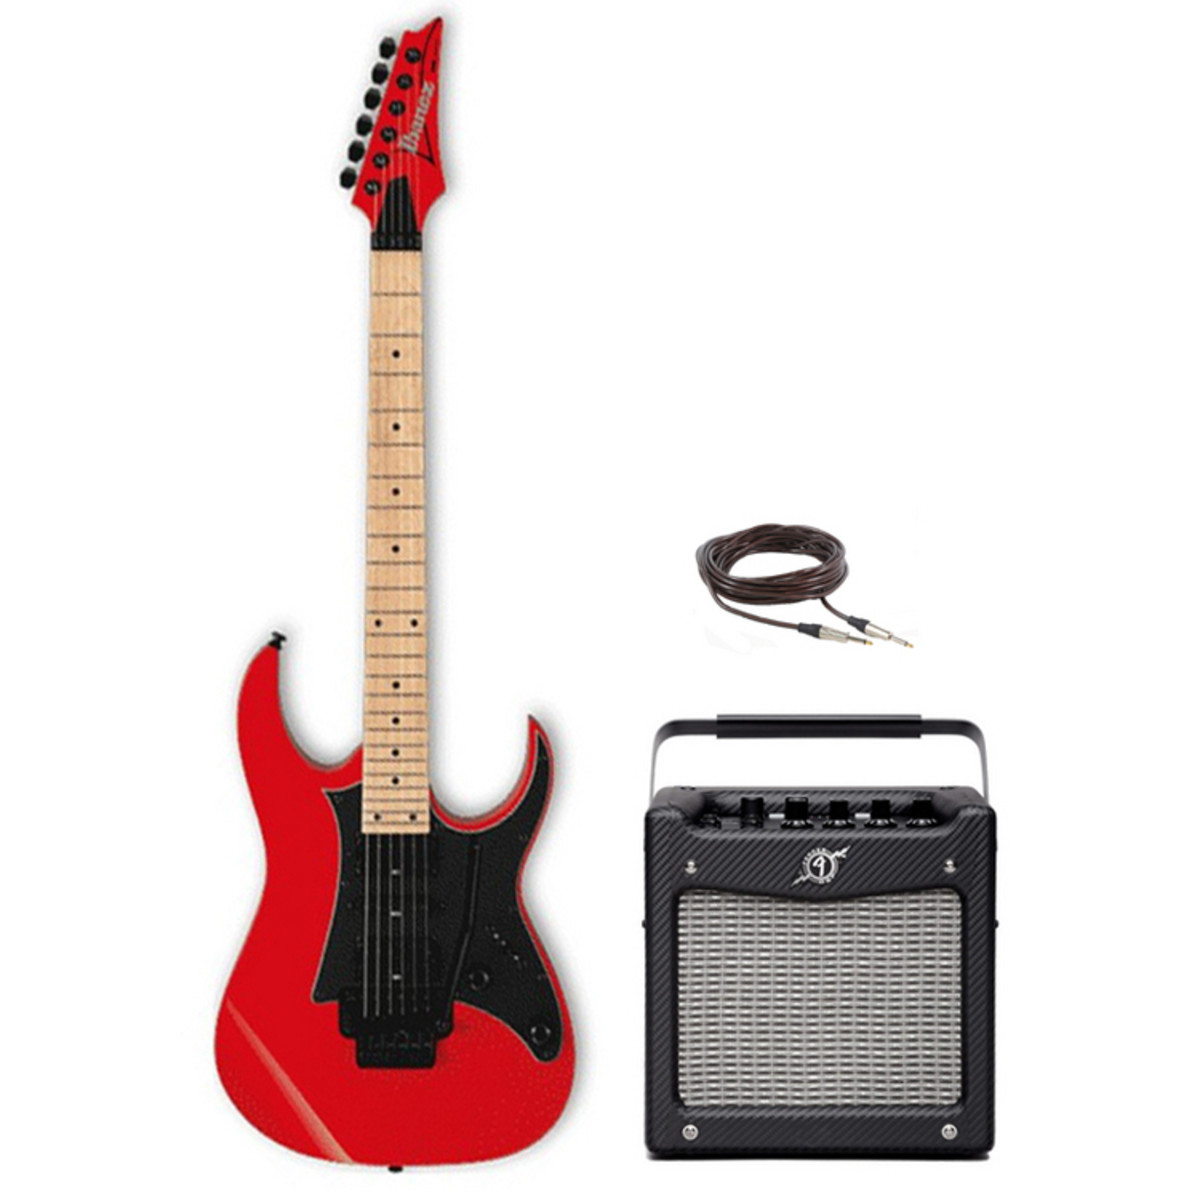 Disc Ibanez Rg350mz Electric Guitar Red Amp Pack At